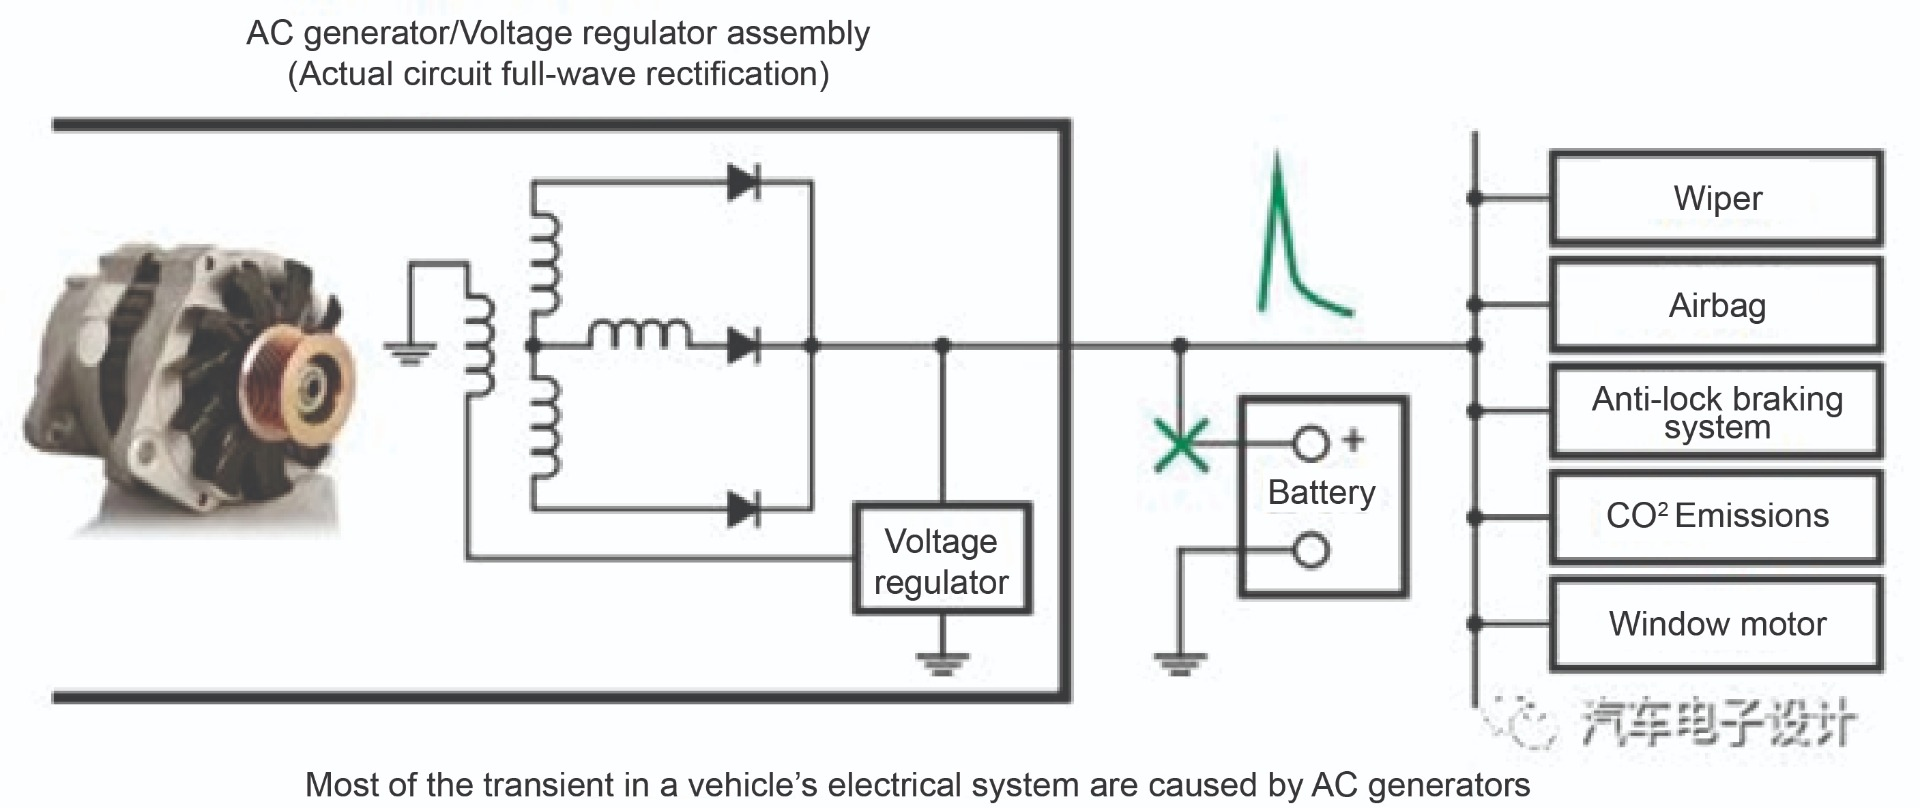 hight resolution of figure 1 transient ac generator